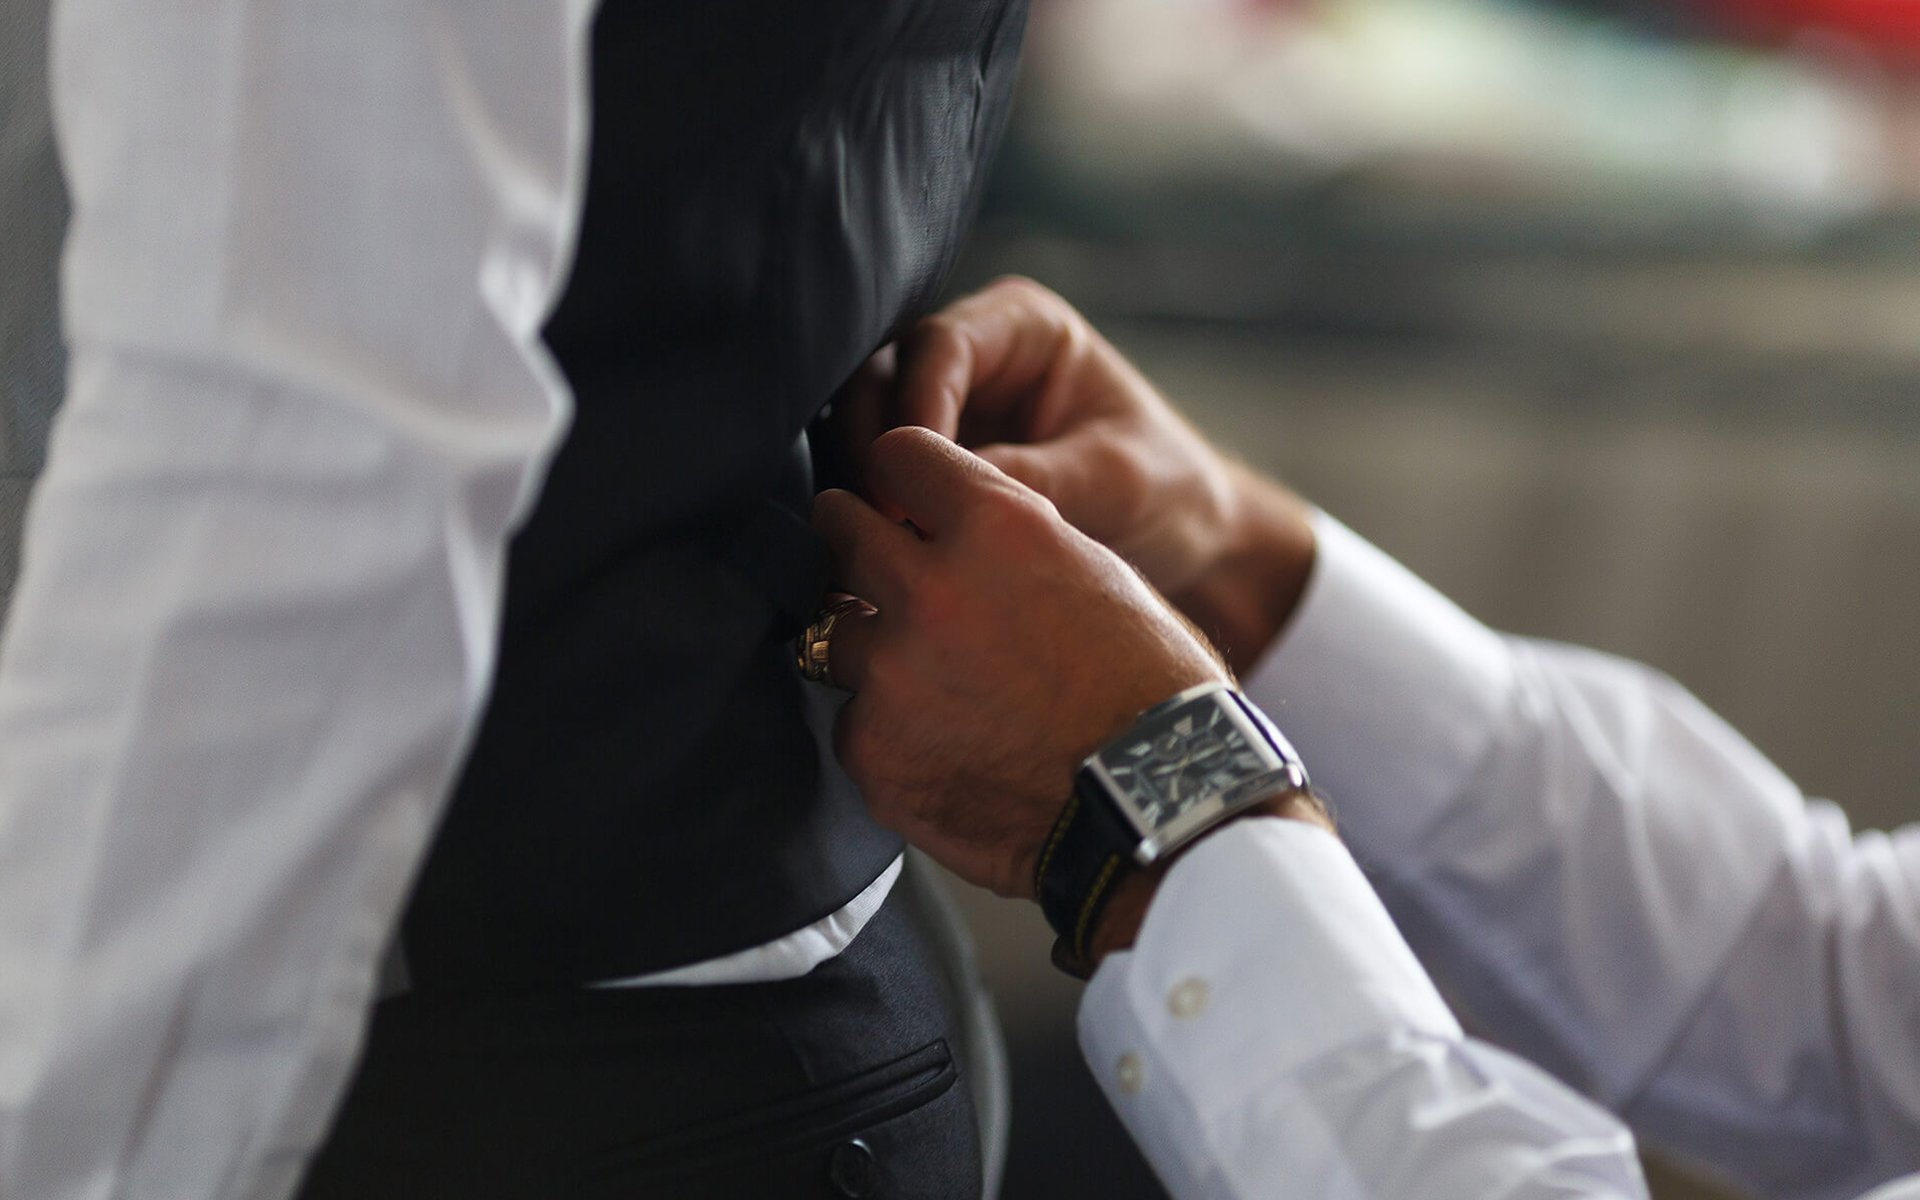 groom putting on cuff-links as he gets dressed in formal wear close up, close up of a hand man how wears white shirt and cufflink, business photo